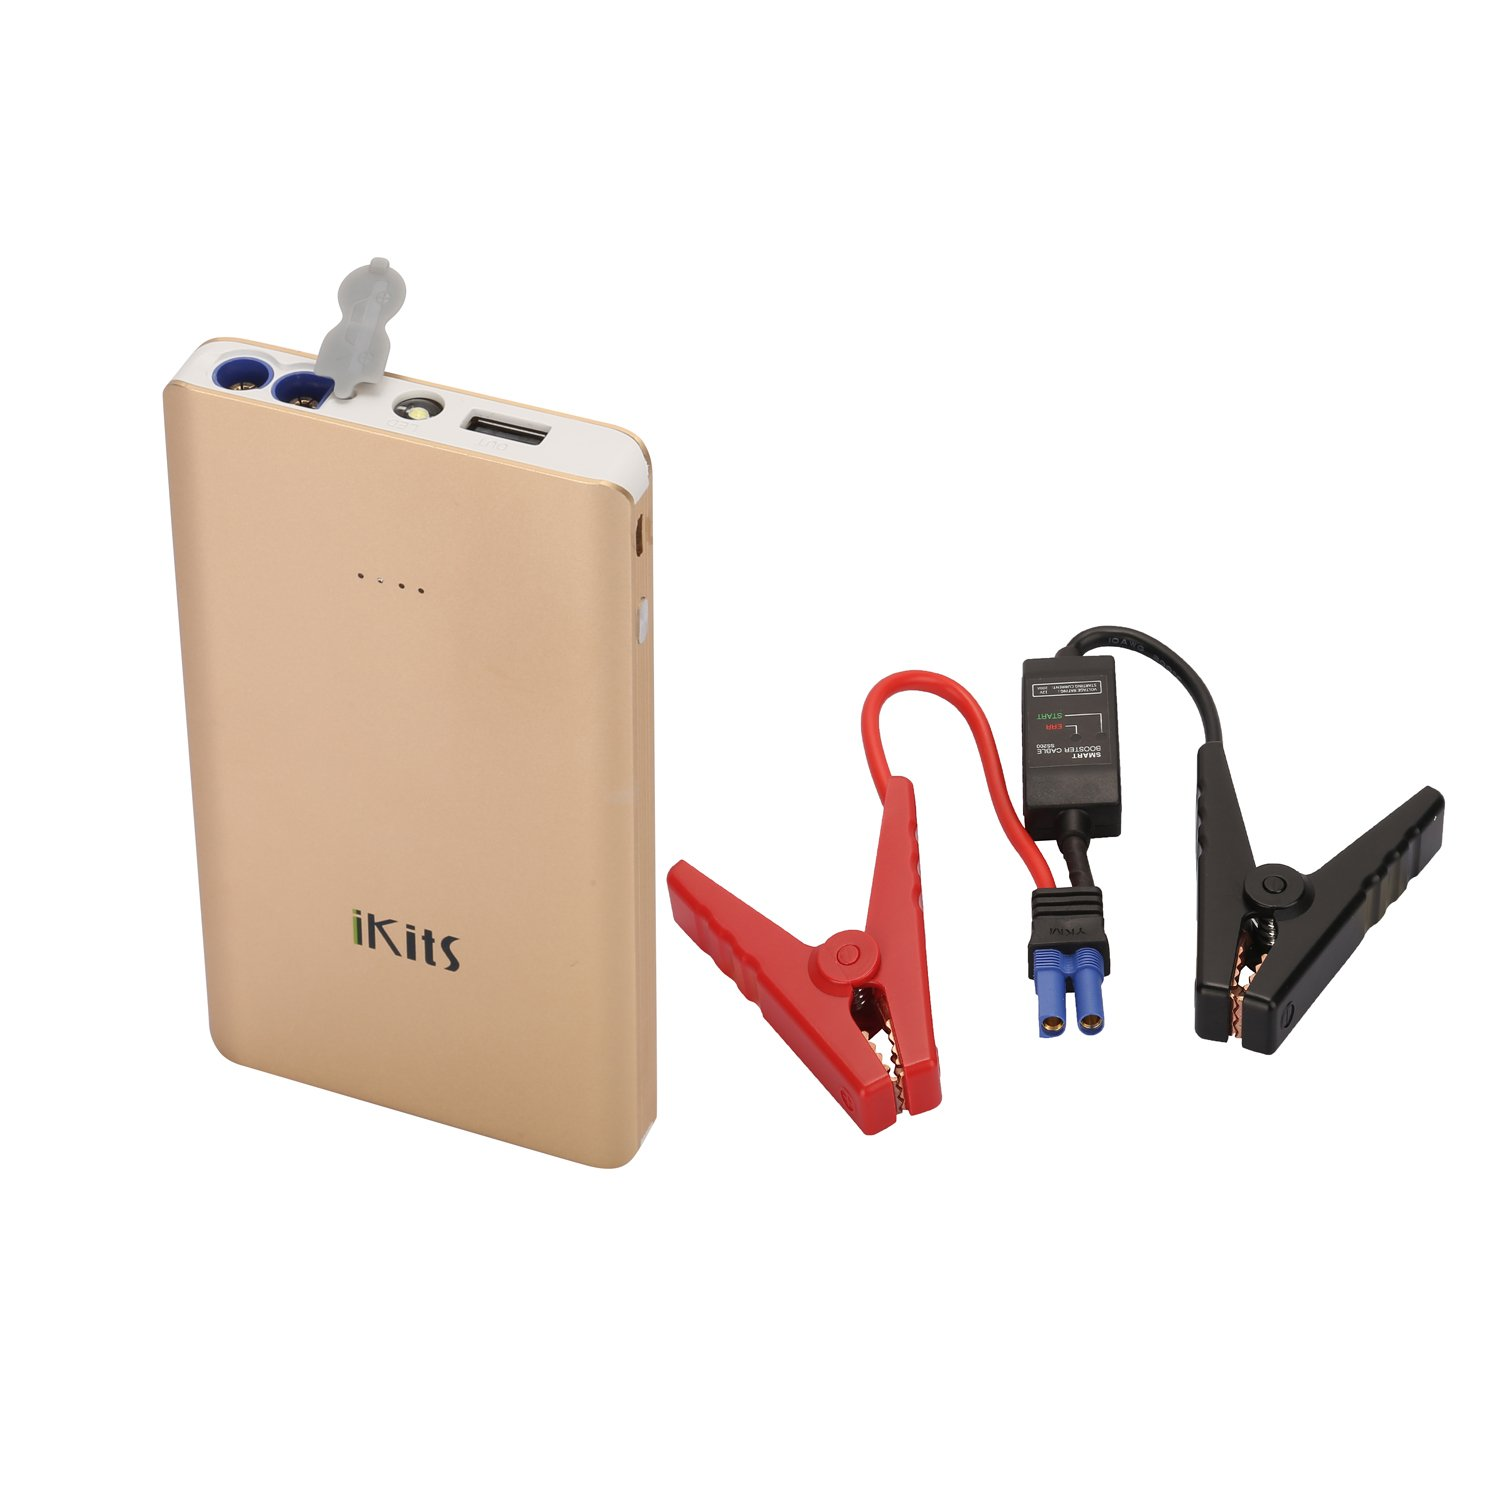 Ikits (Ce/Fcc Verified) 5V/2A + 400A Peak 5400Mah Portable Car Jump Starter C.. 18